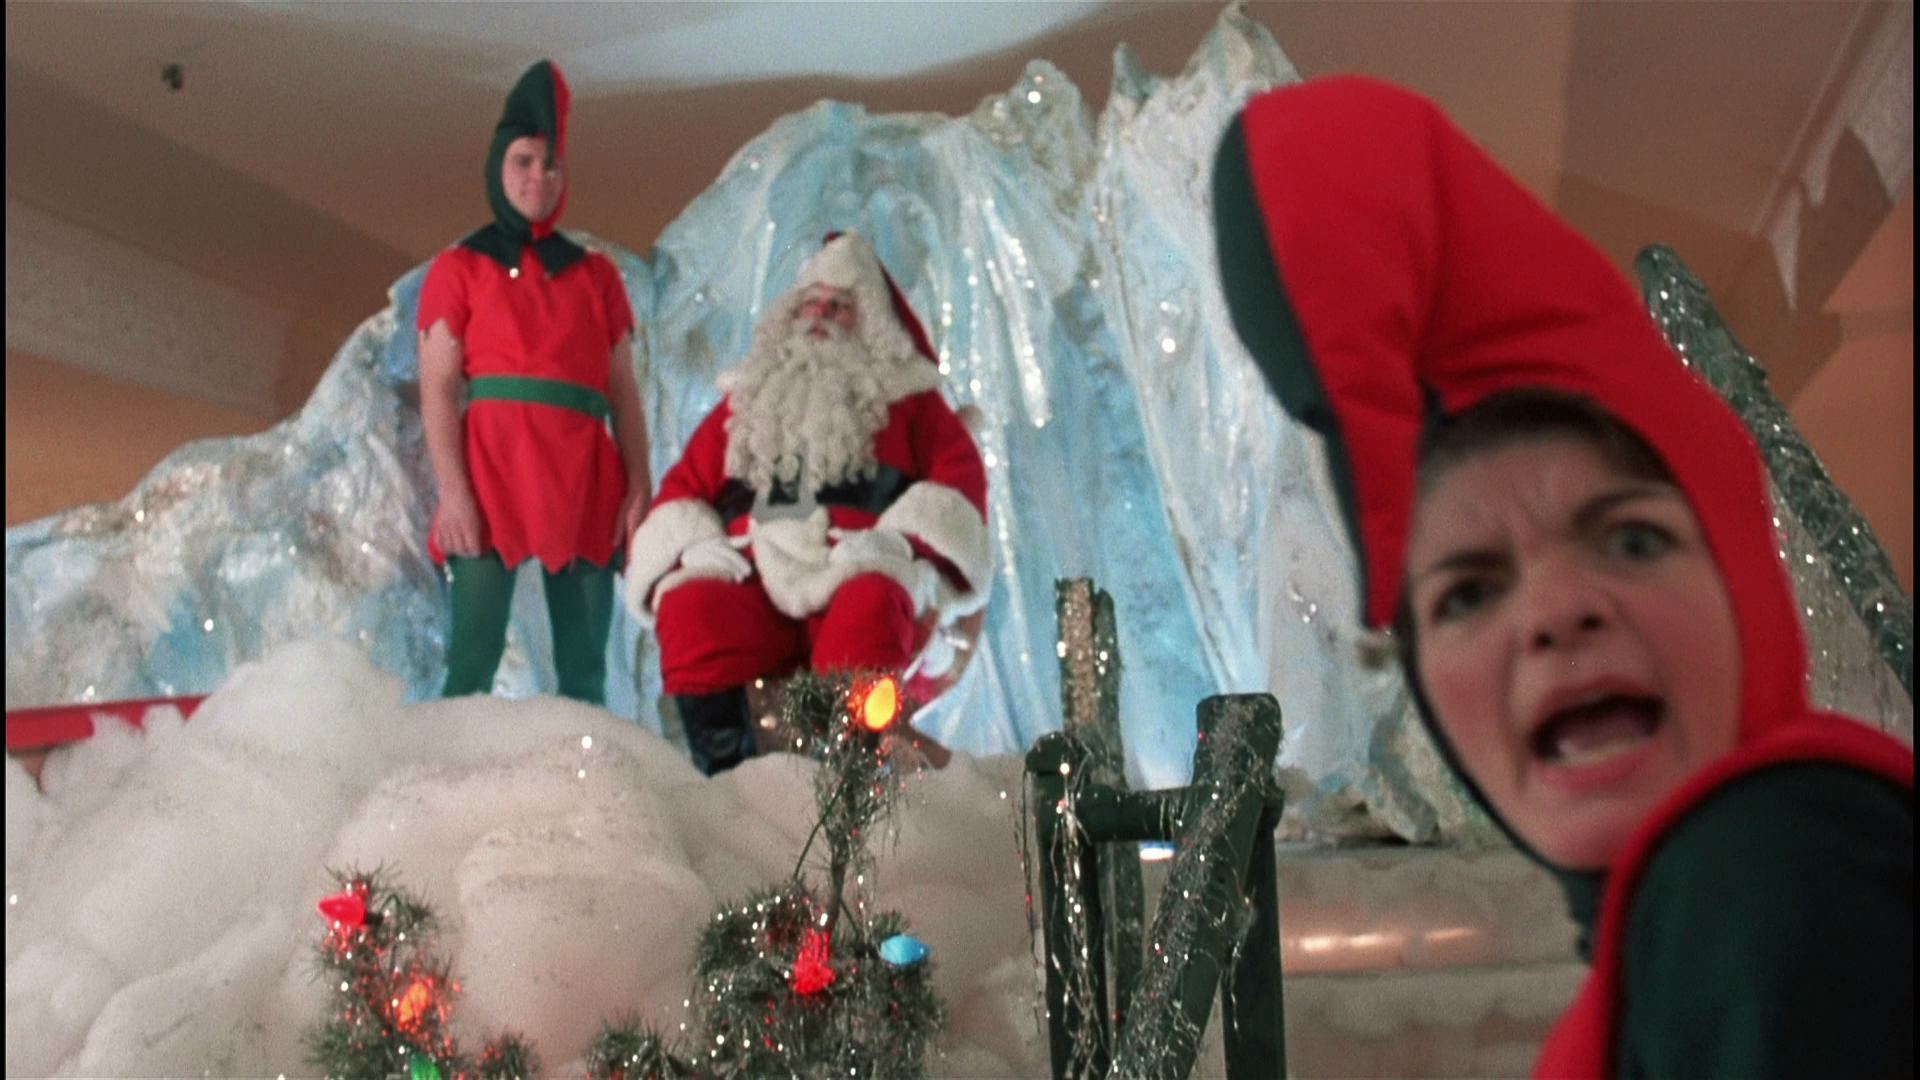 Youll Shoot Your Eye Out Thrifty Vintage Kitten   A Christmas Story ...